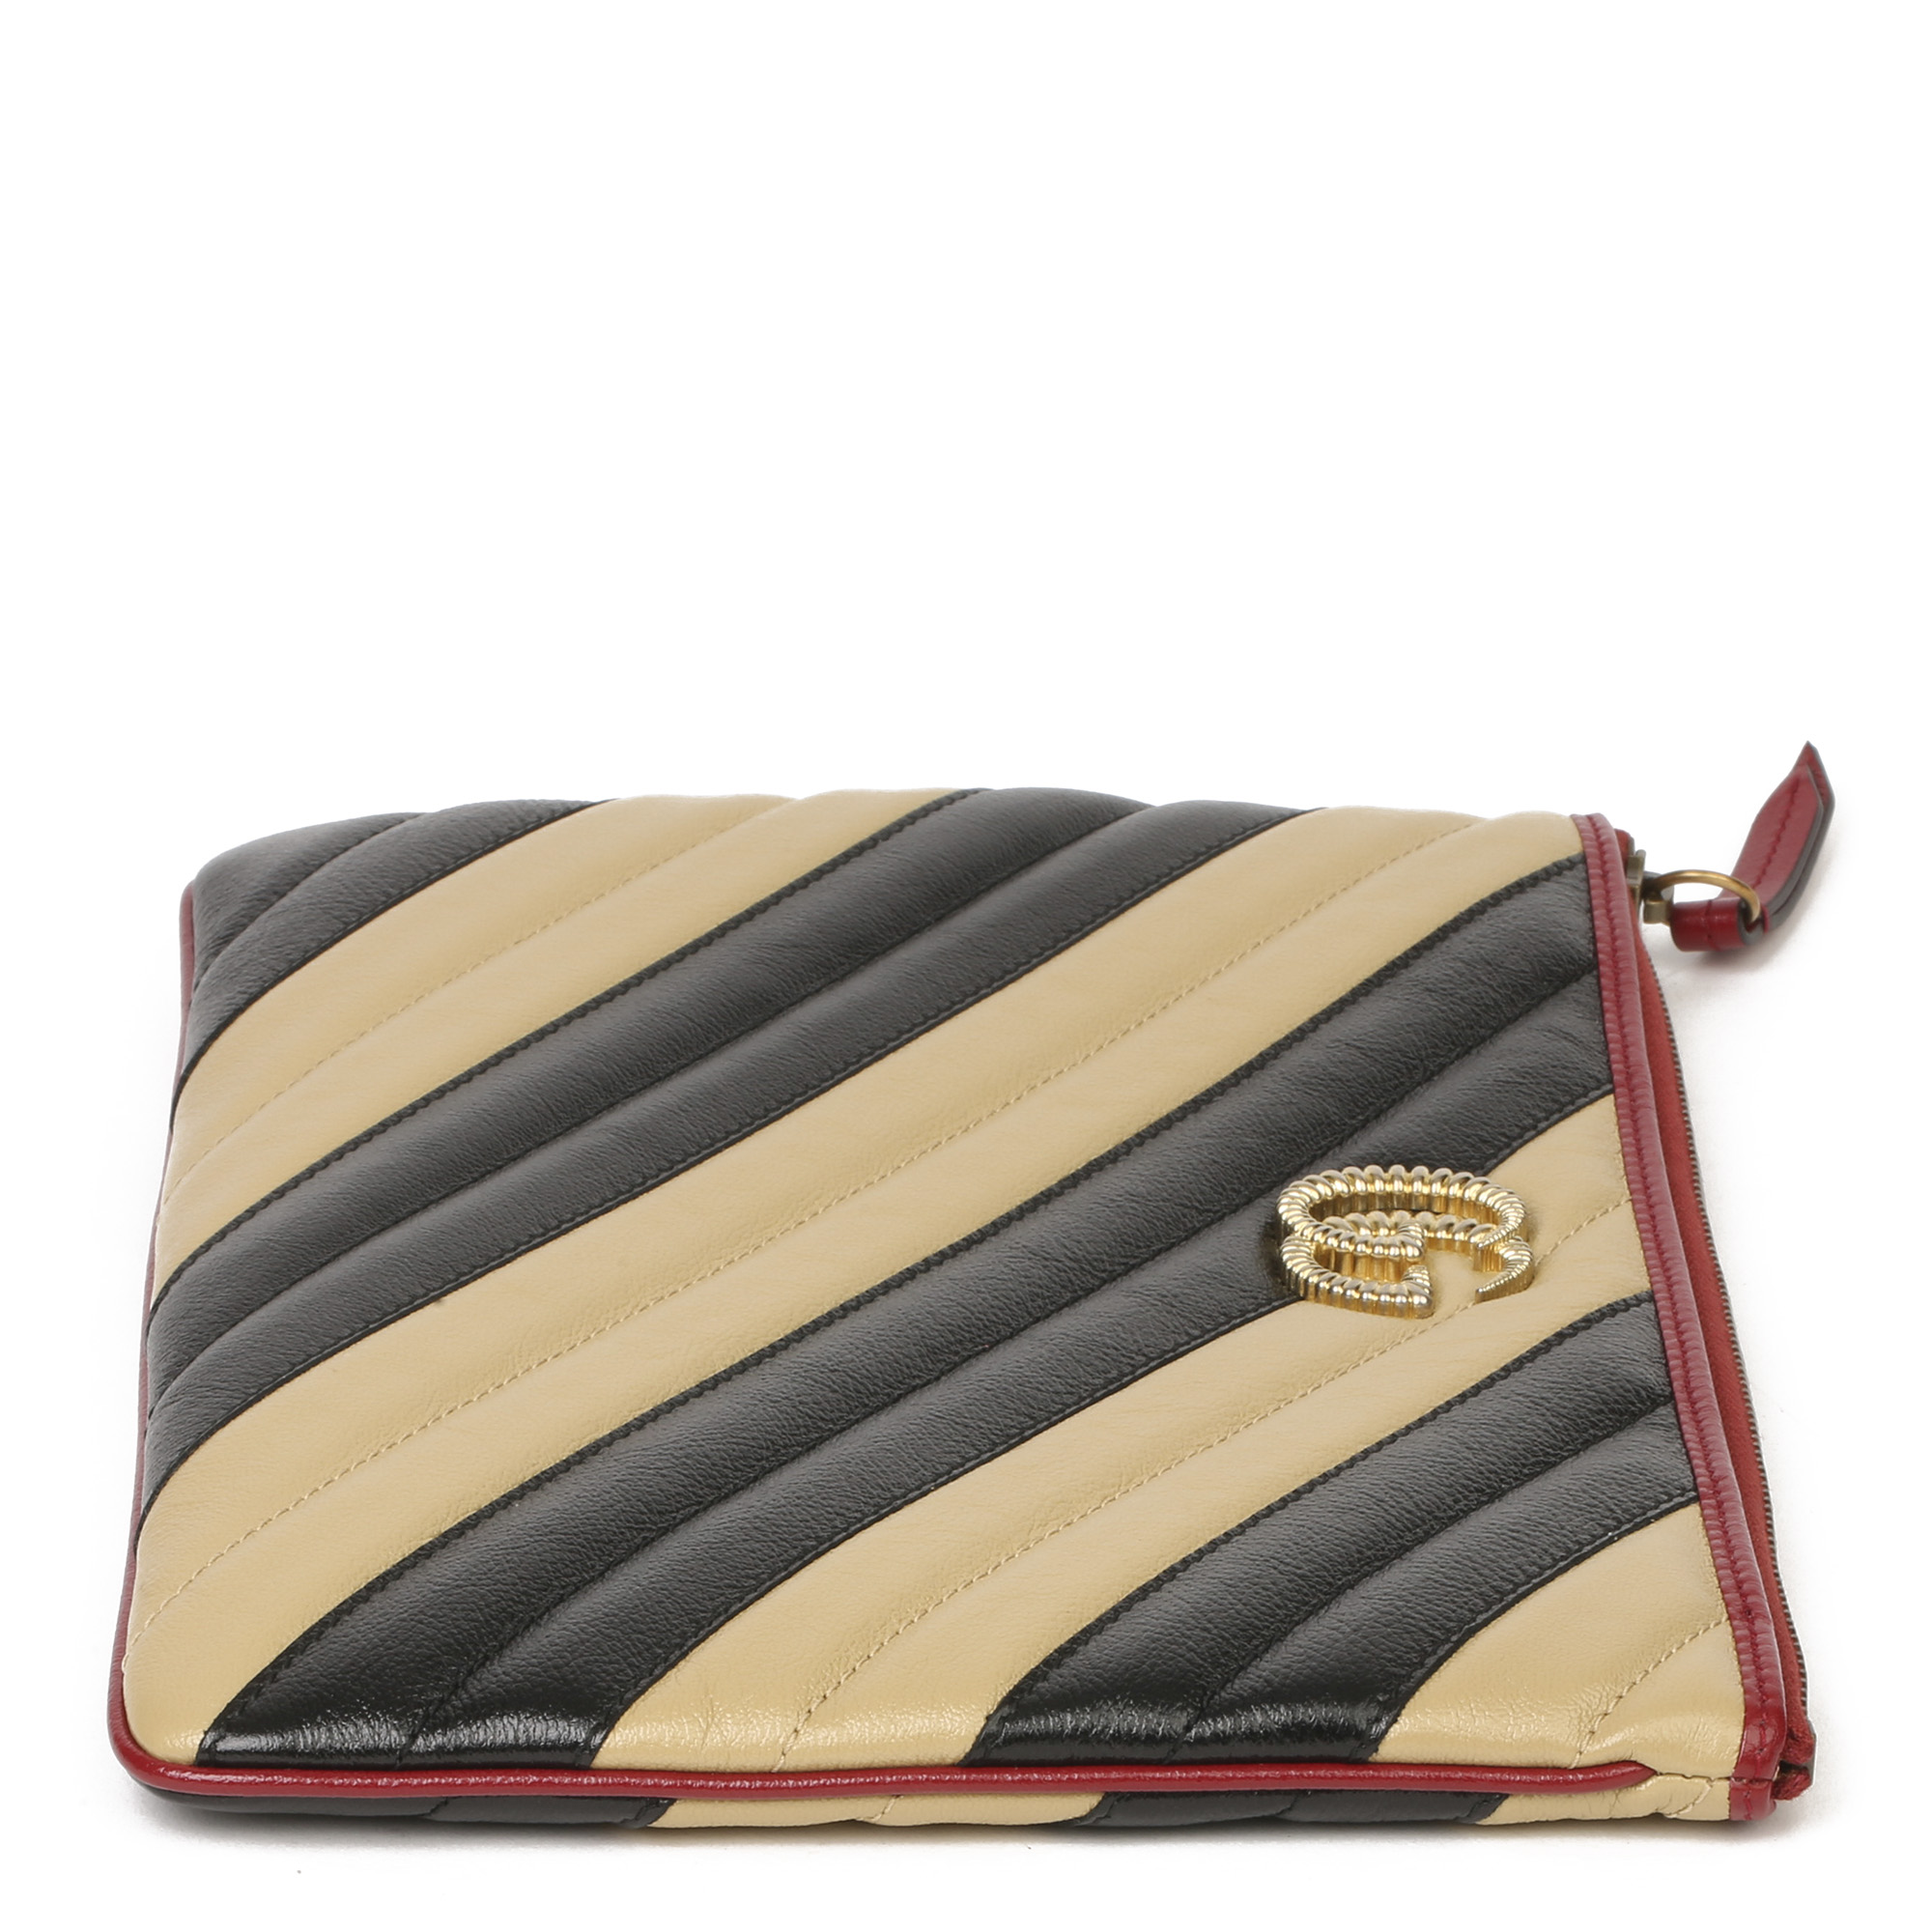 Gucci Black, Cream & Red Diagonal Quilted Aged Calfskin Leather Marmont Pouch - Image 10 of 11